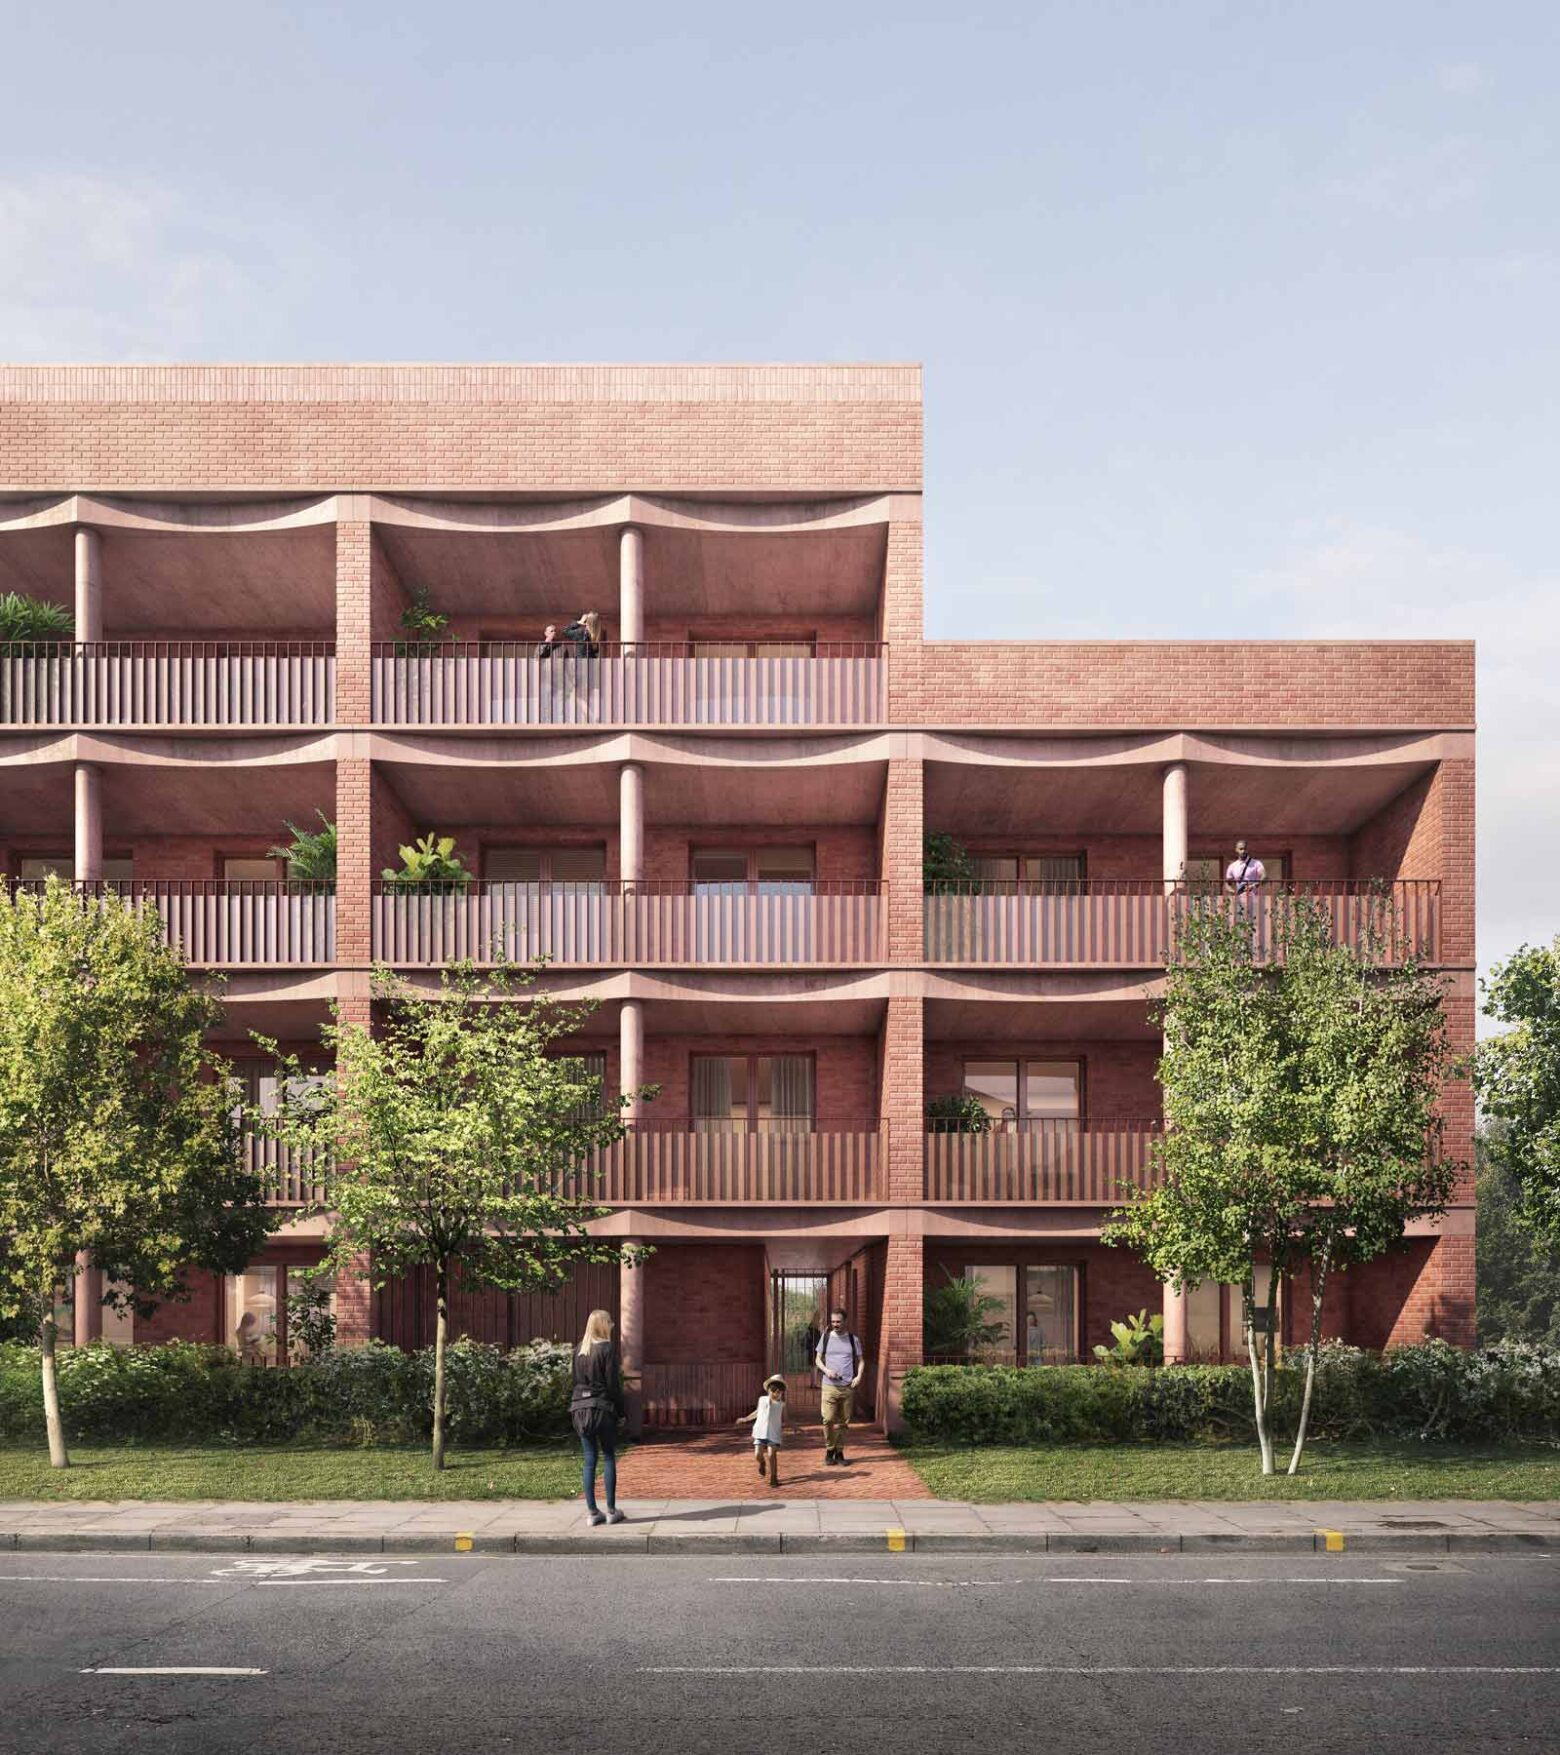 Planning submitted for new homes in Ealing